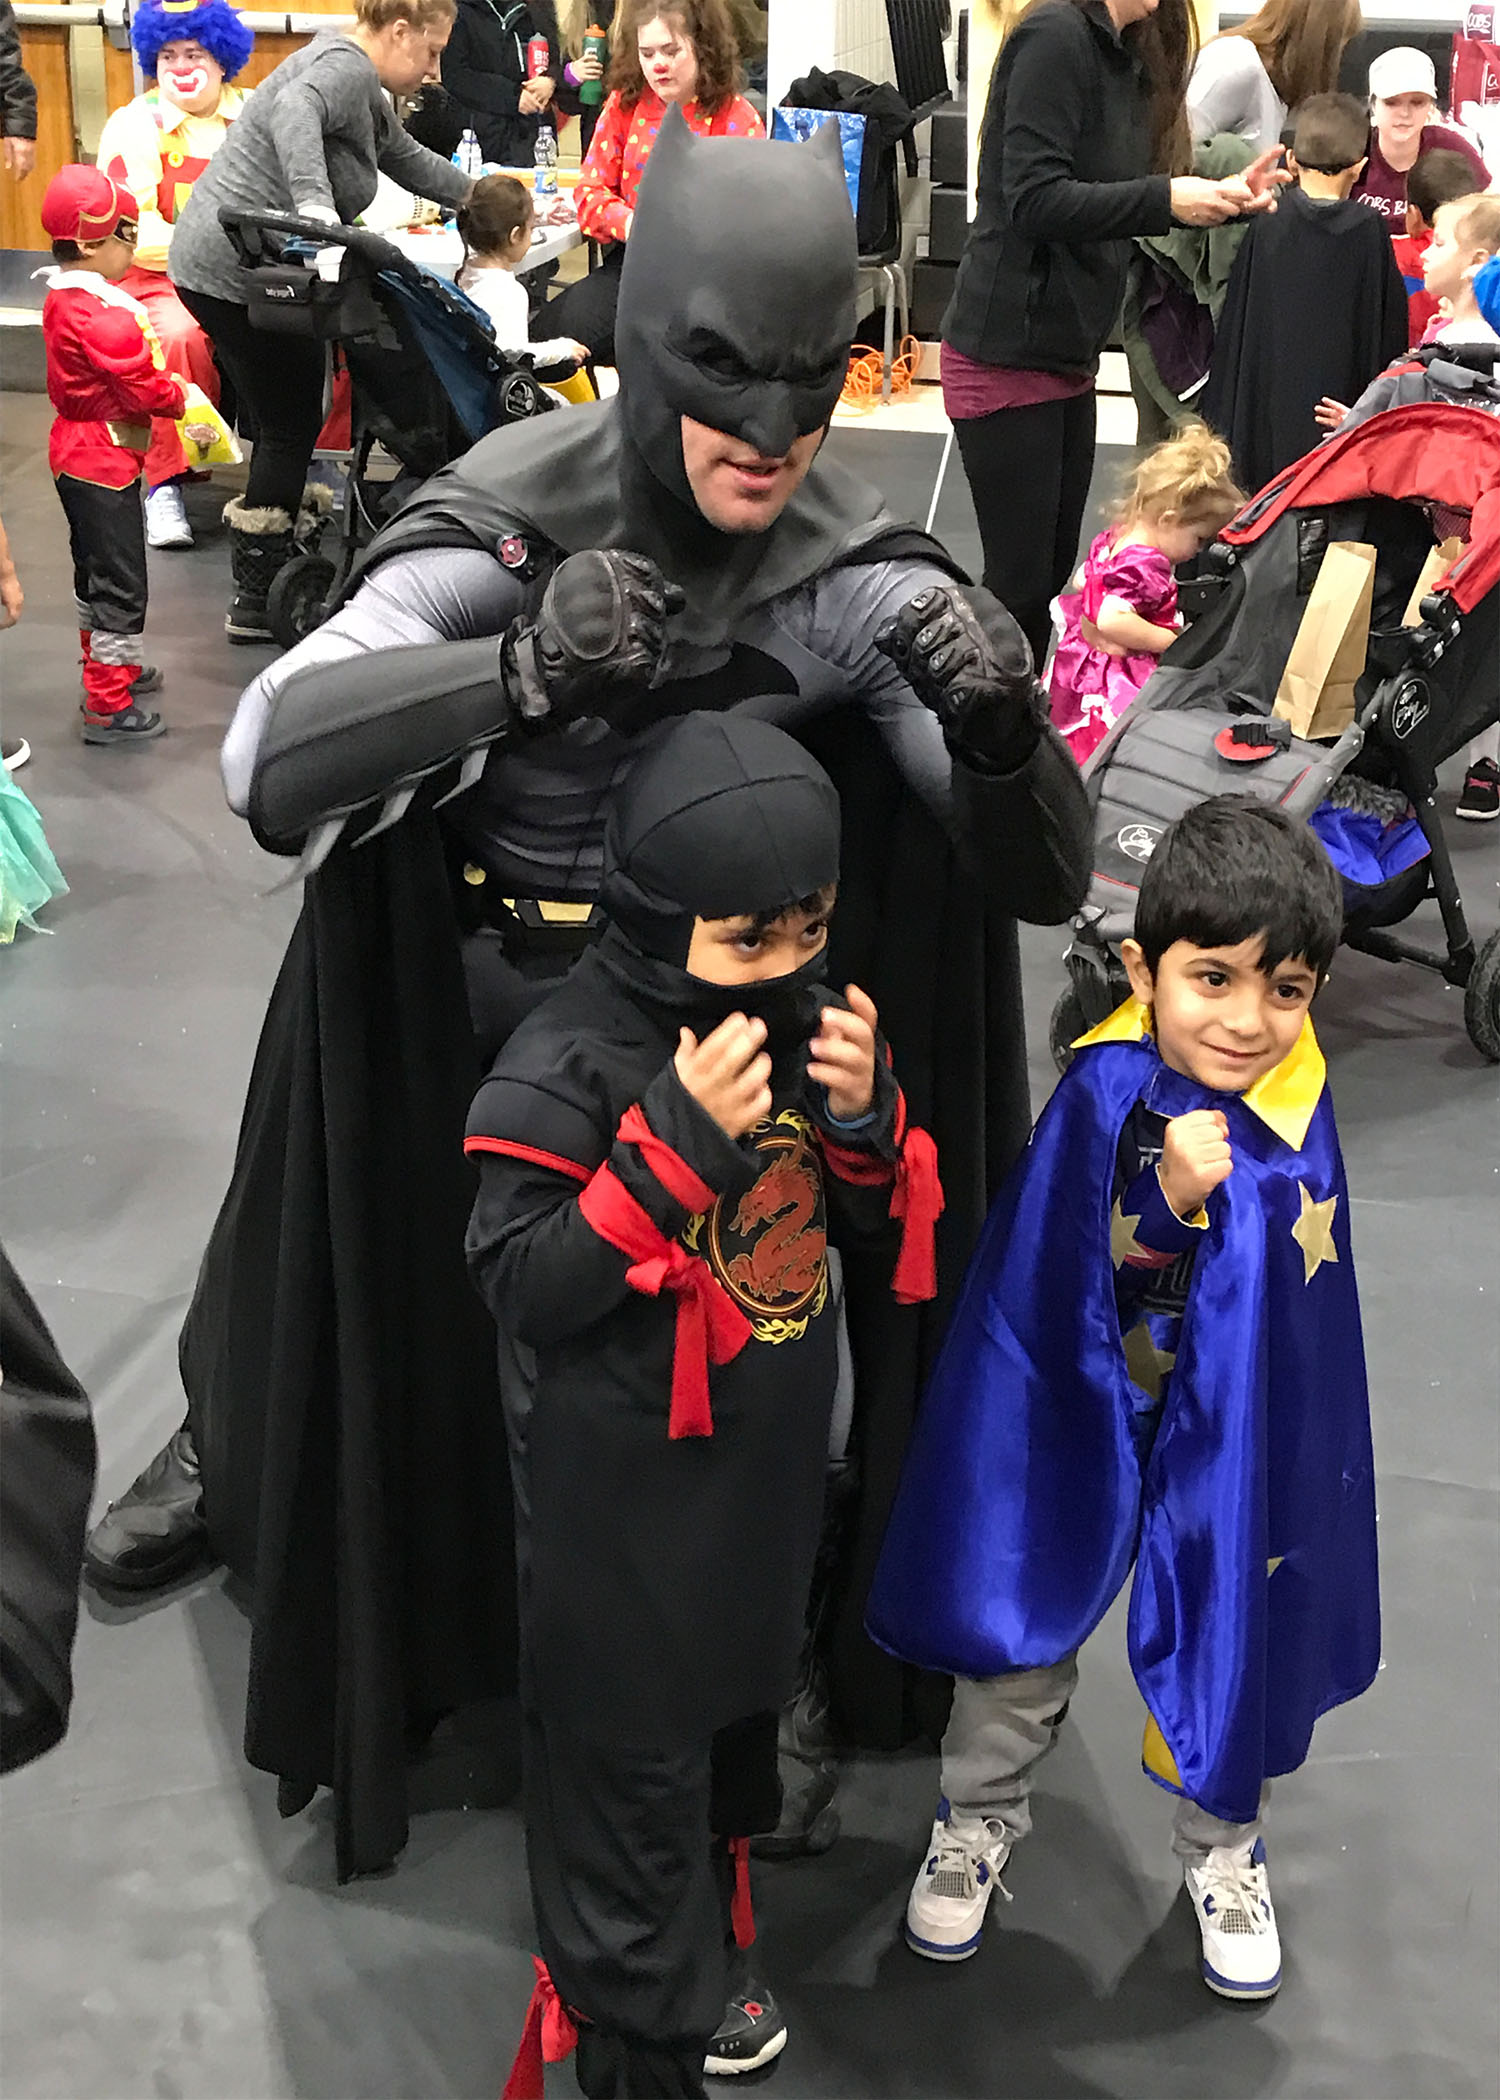 Batman with two young superheros